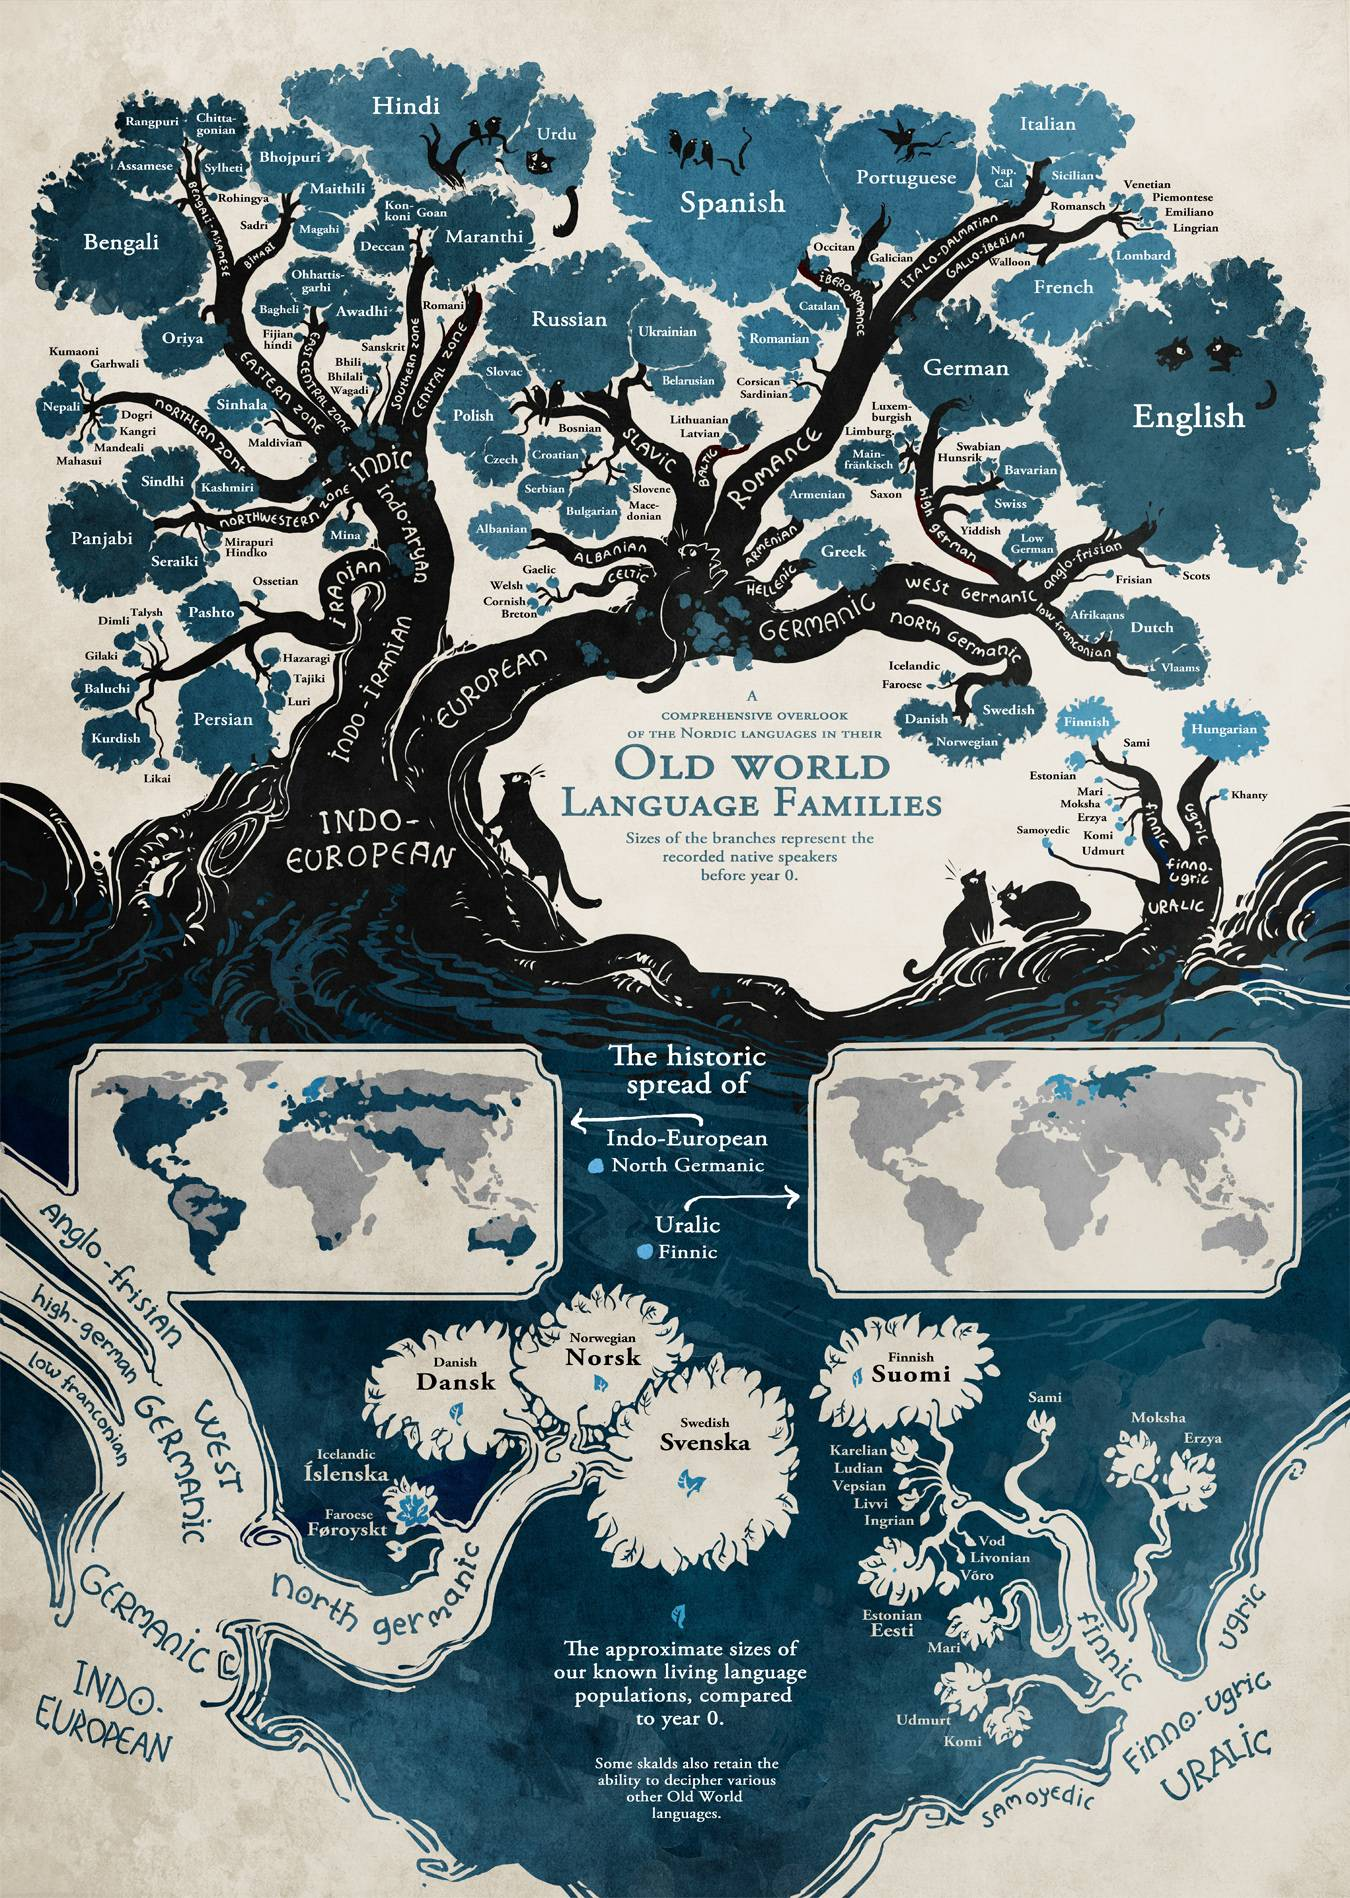 L Origine Des Langues Dans Un Arbre Genealogique Video